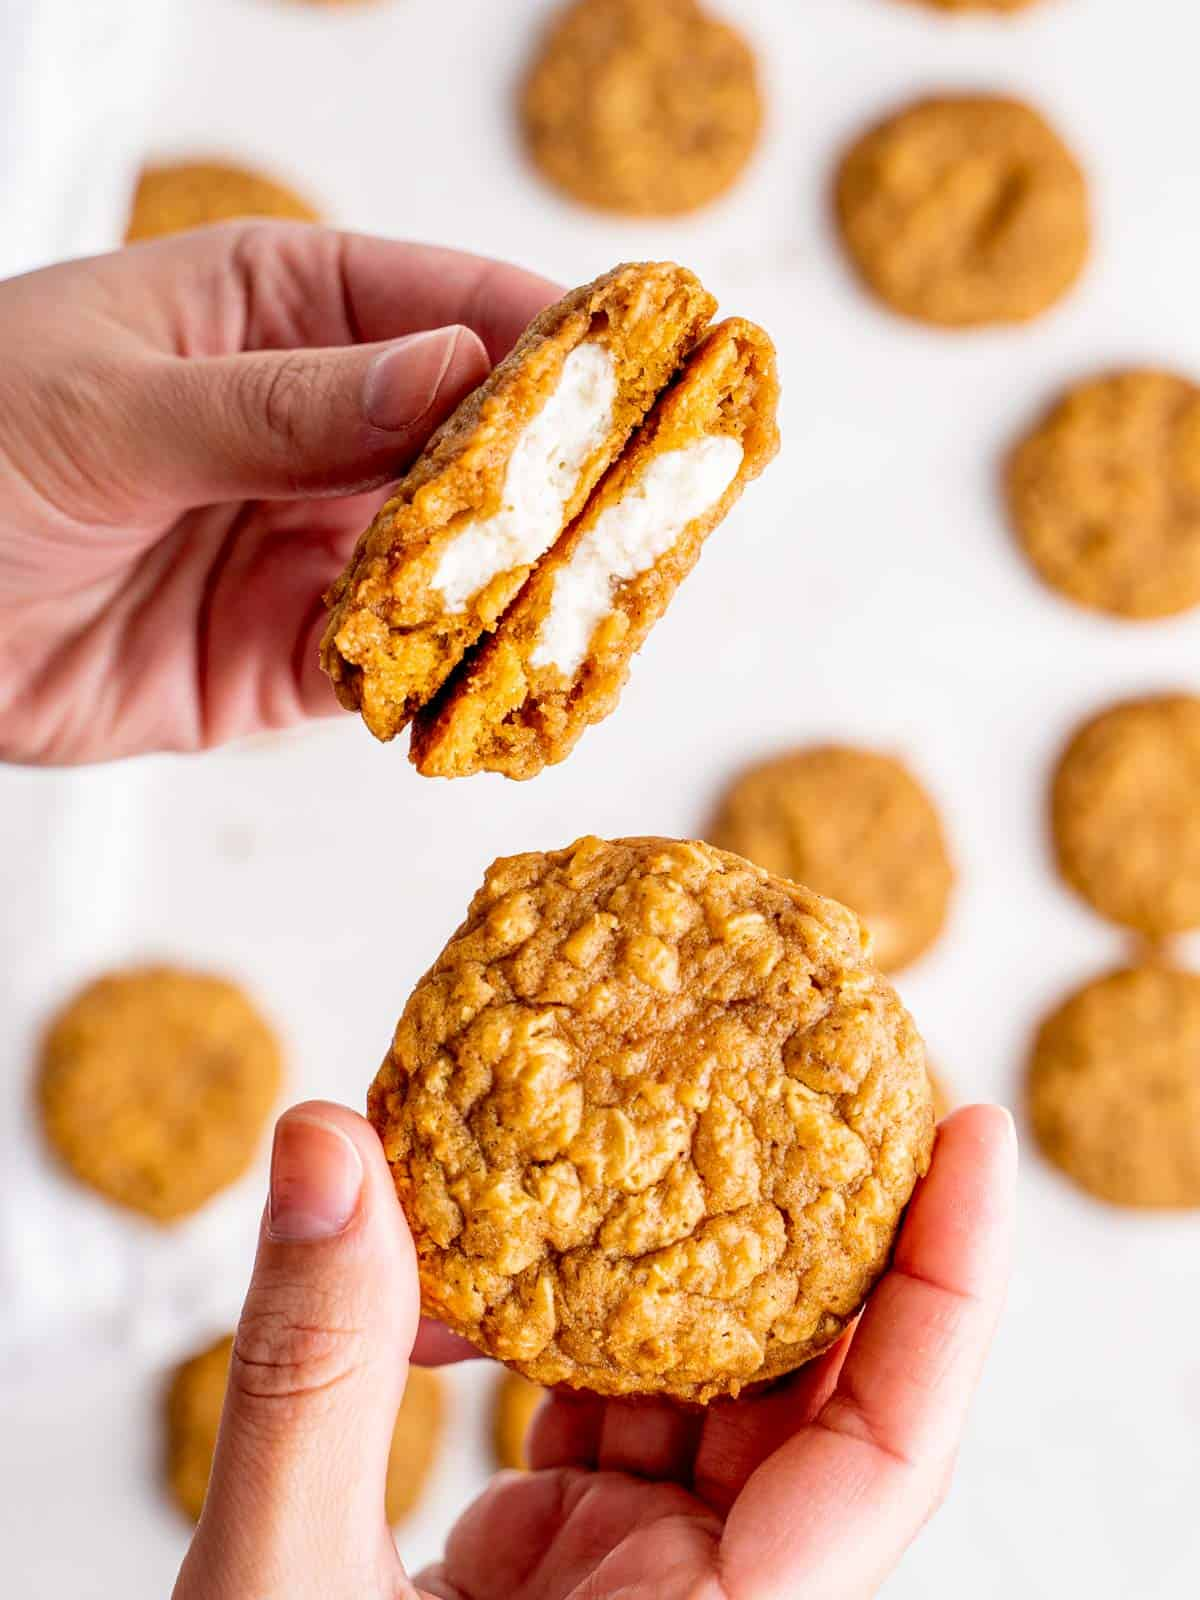 one hand holding two halves of an oatmeal pumpkin cheesecake cookie showing the center and one hand holding a whole cookie